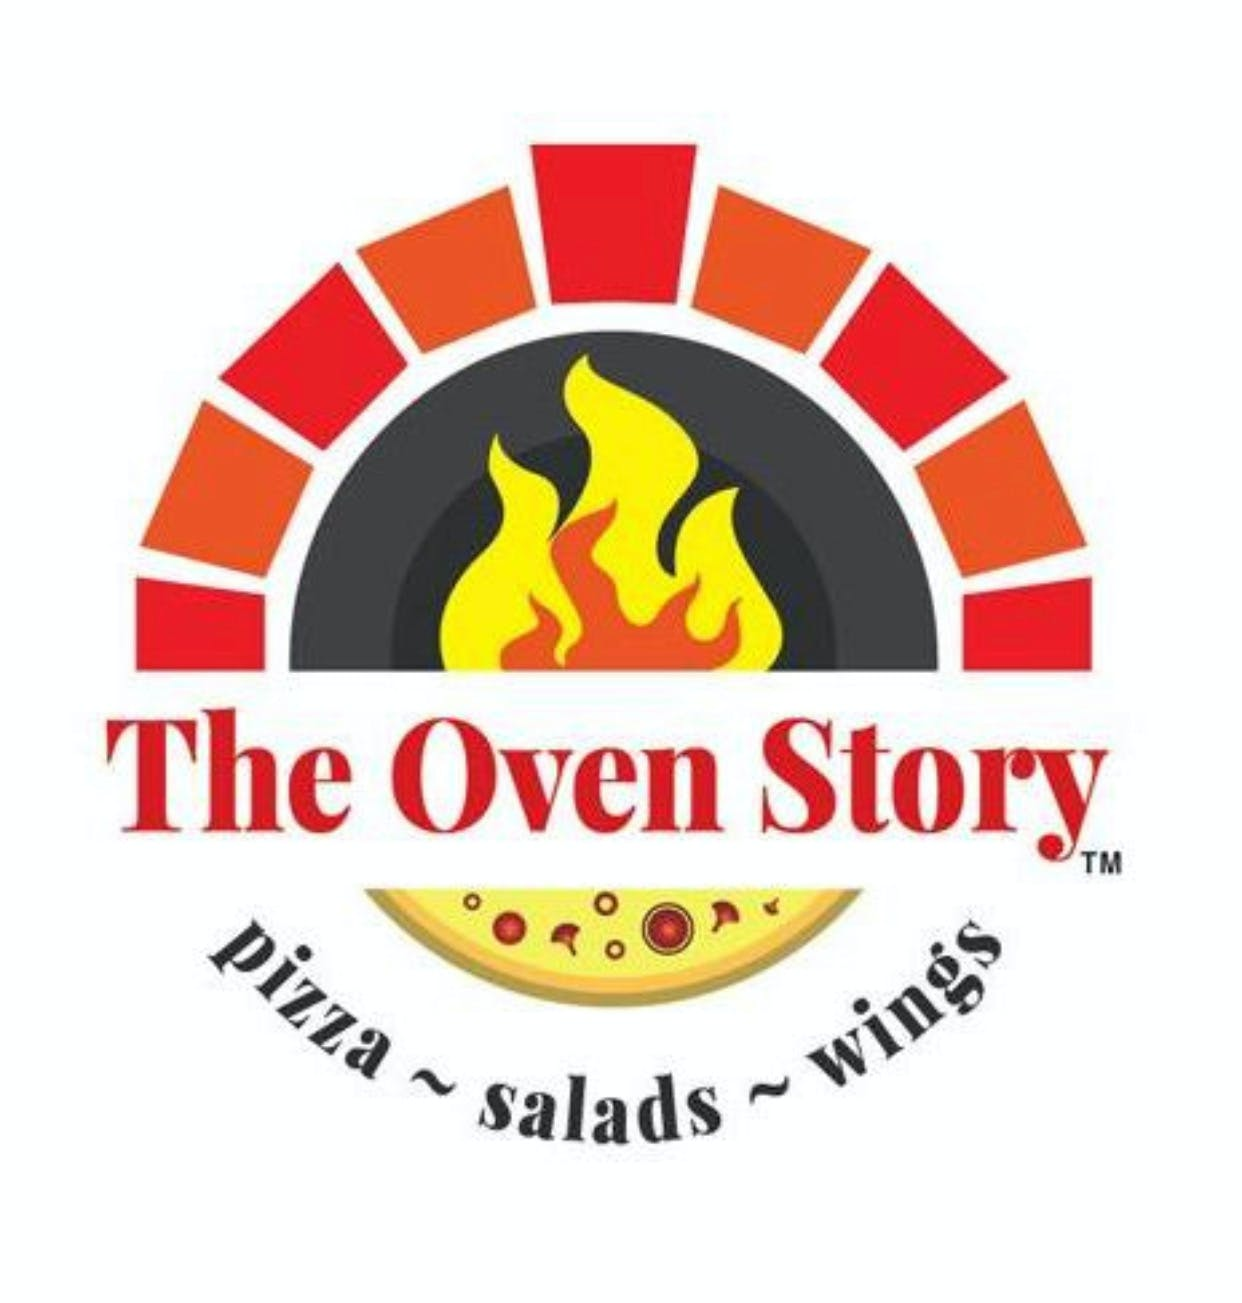 The Oven Story